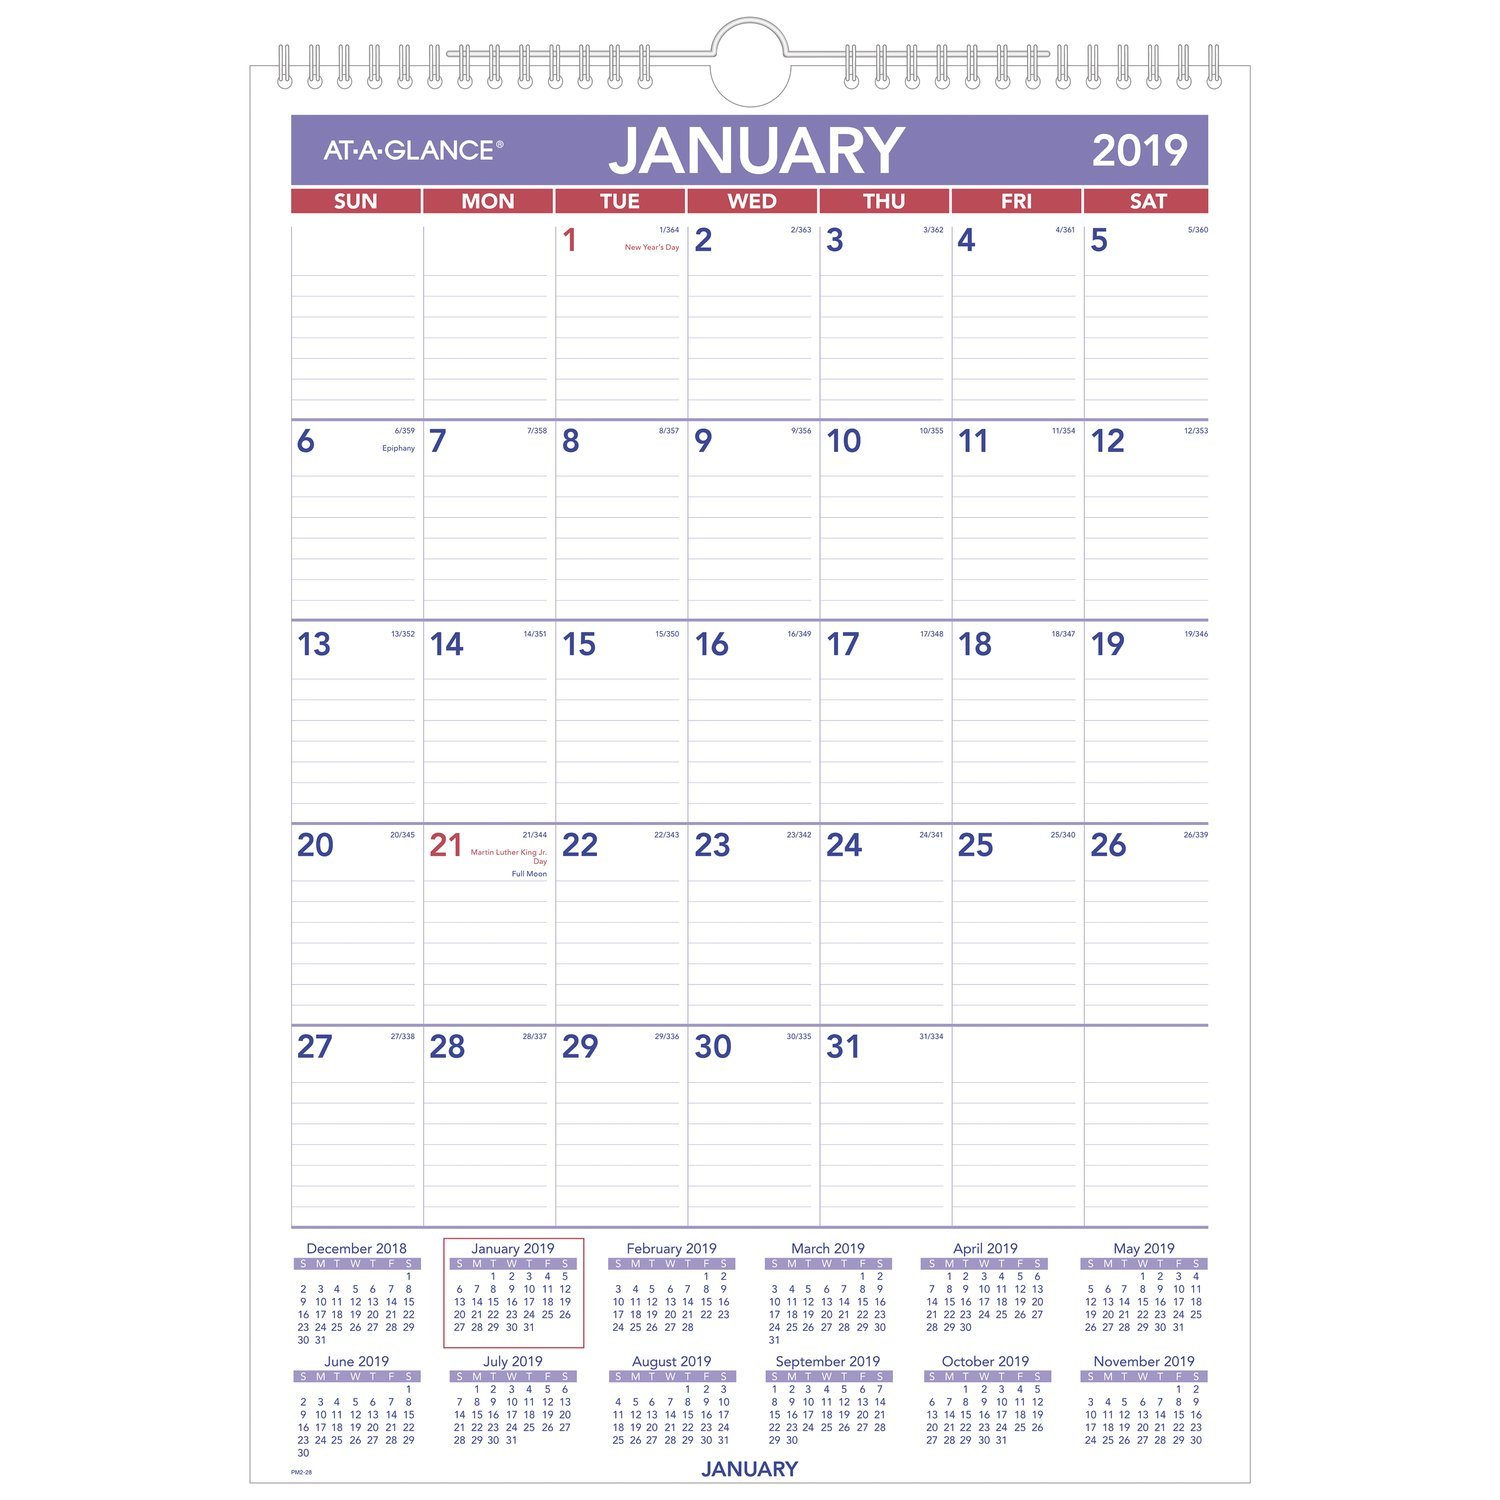 AT-A-GLANCE PM228-18 Monthly Wall Calendar, January 2019 - December 2019, 12'' x 17'', Wirebound (PM228)